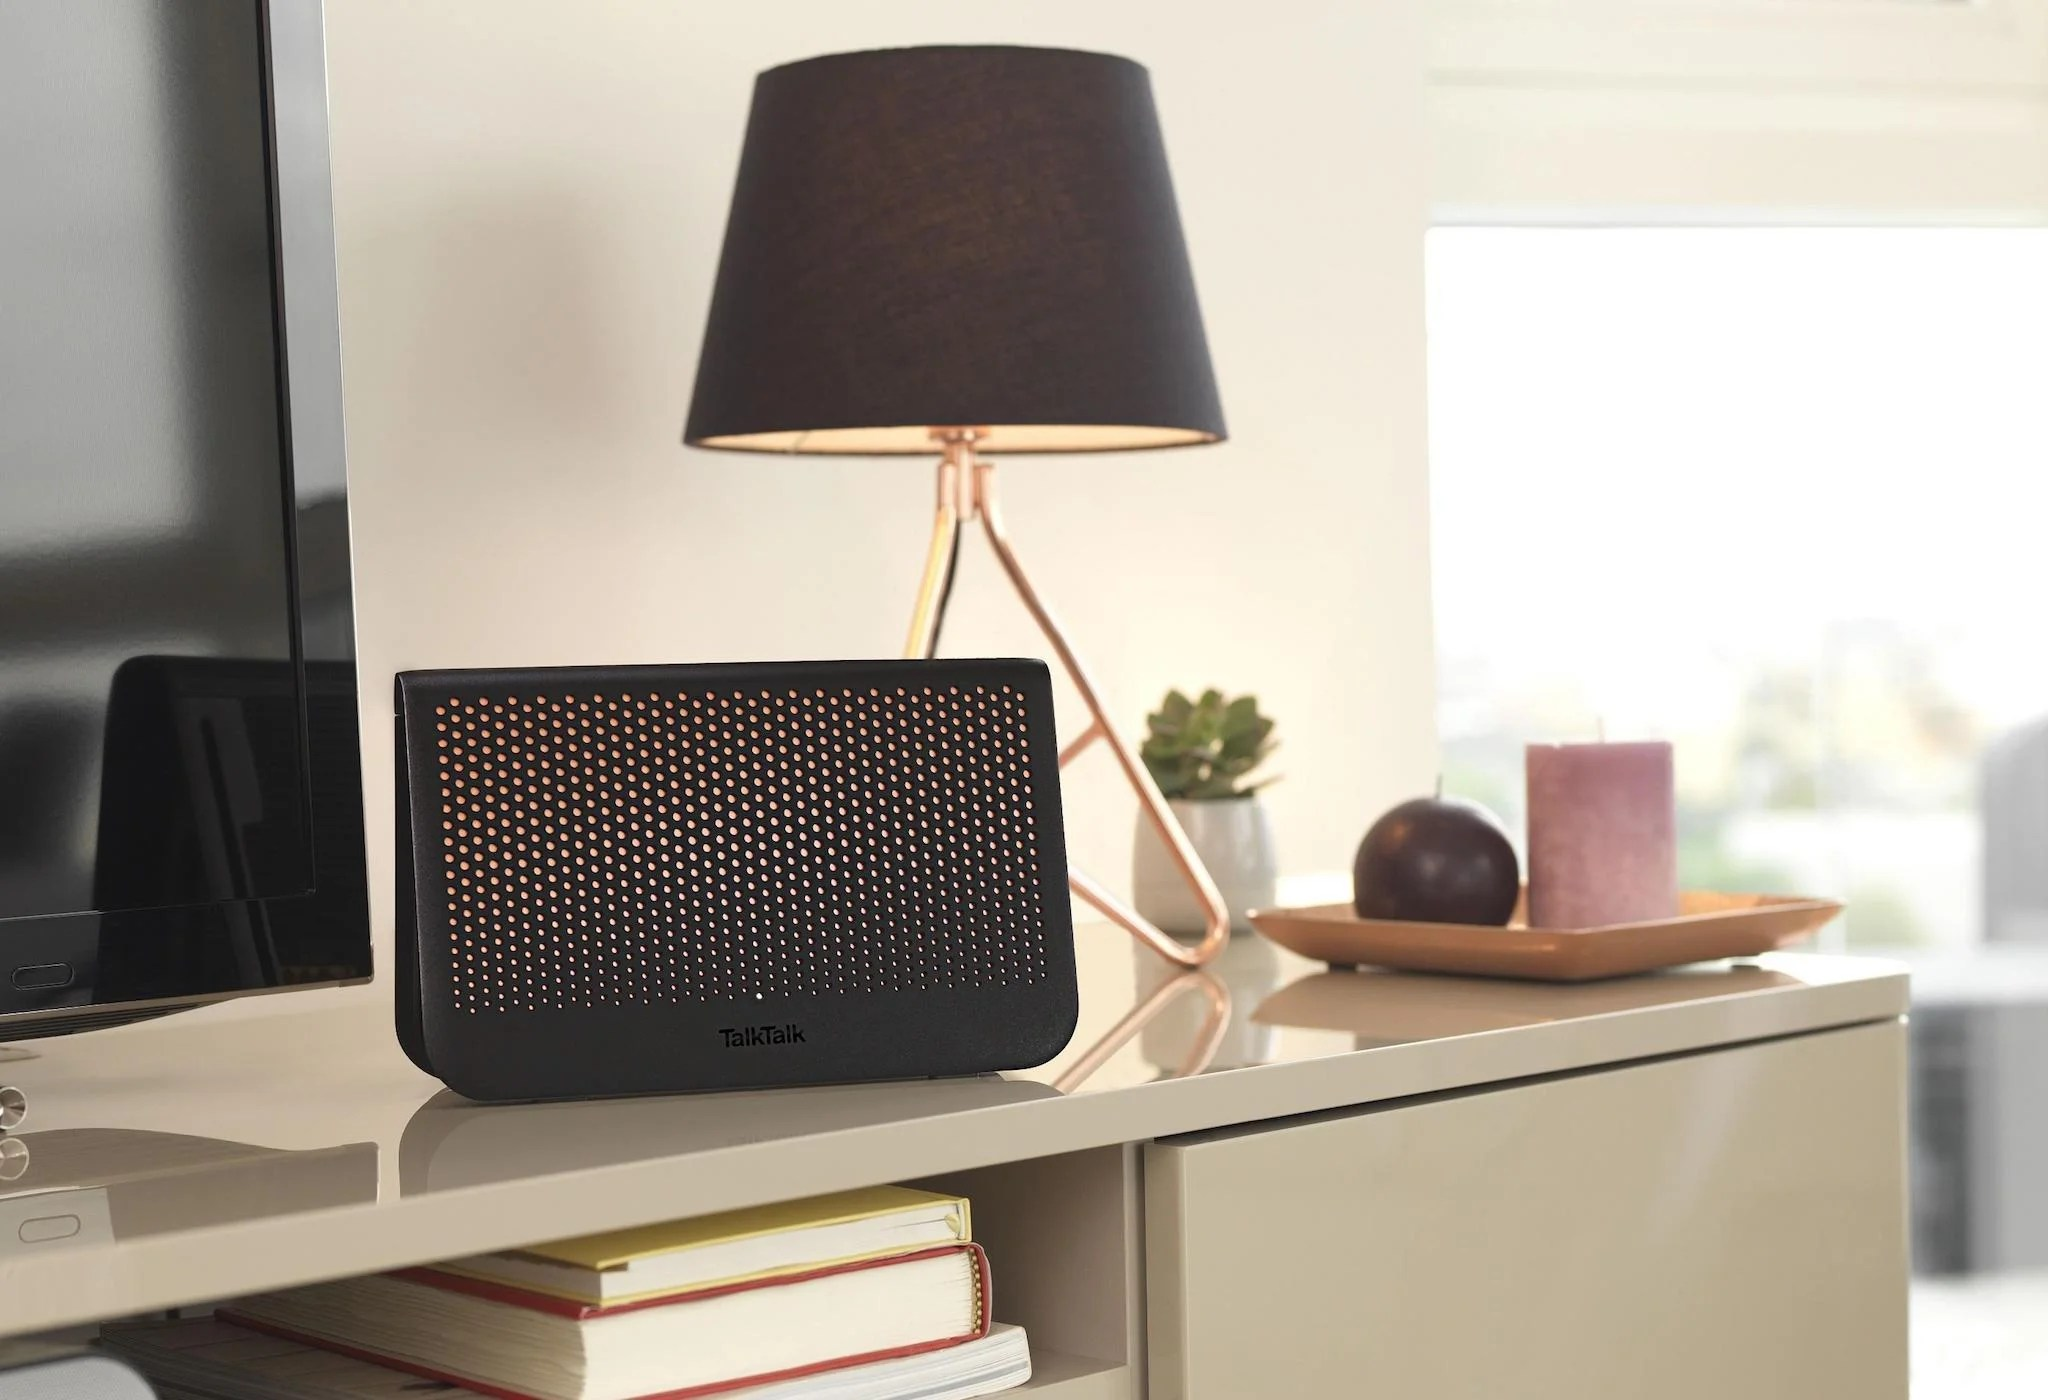 TalkTalk WiFI Hub review Is a new router enough to make